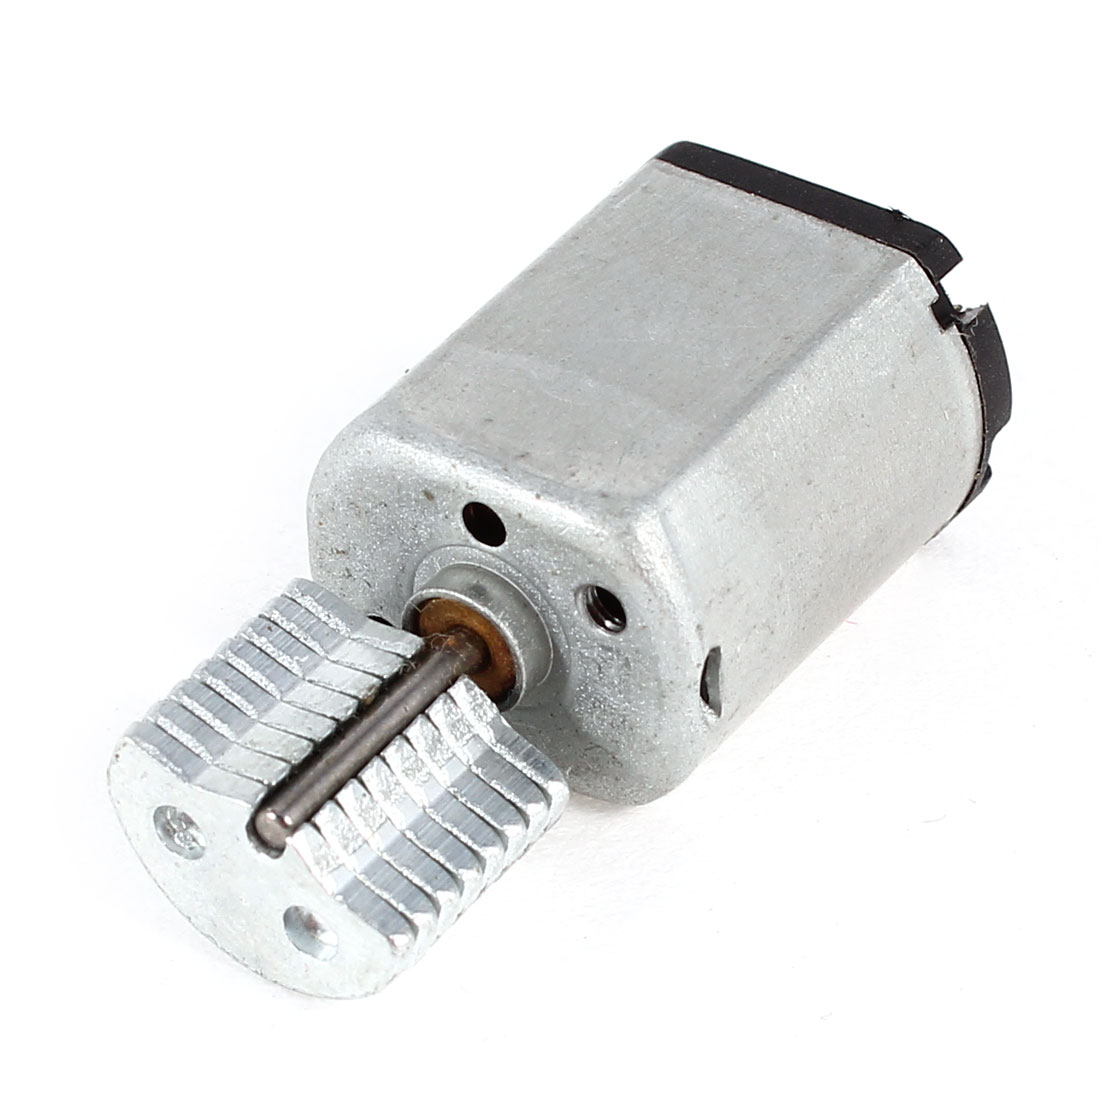 FF-030-12145 DC 5V 60mA 10500RPM Micro Vibration Motor for Massager RC Toy Model